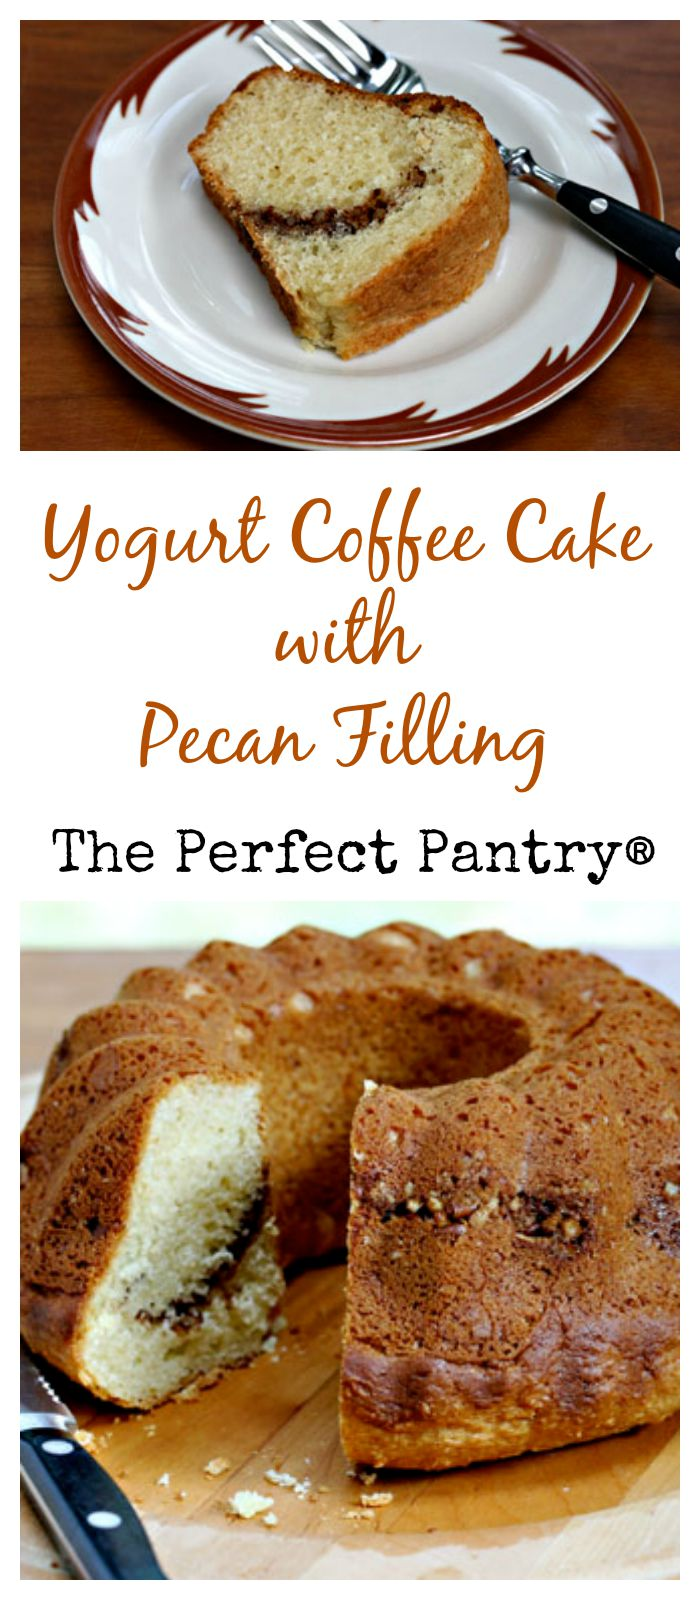 Yogurt coffee cake with pecan filling freezes so well. Keep one on hand for drop-in visitors! From The Perfect Pantry.